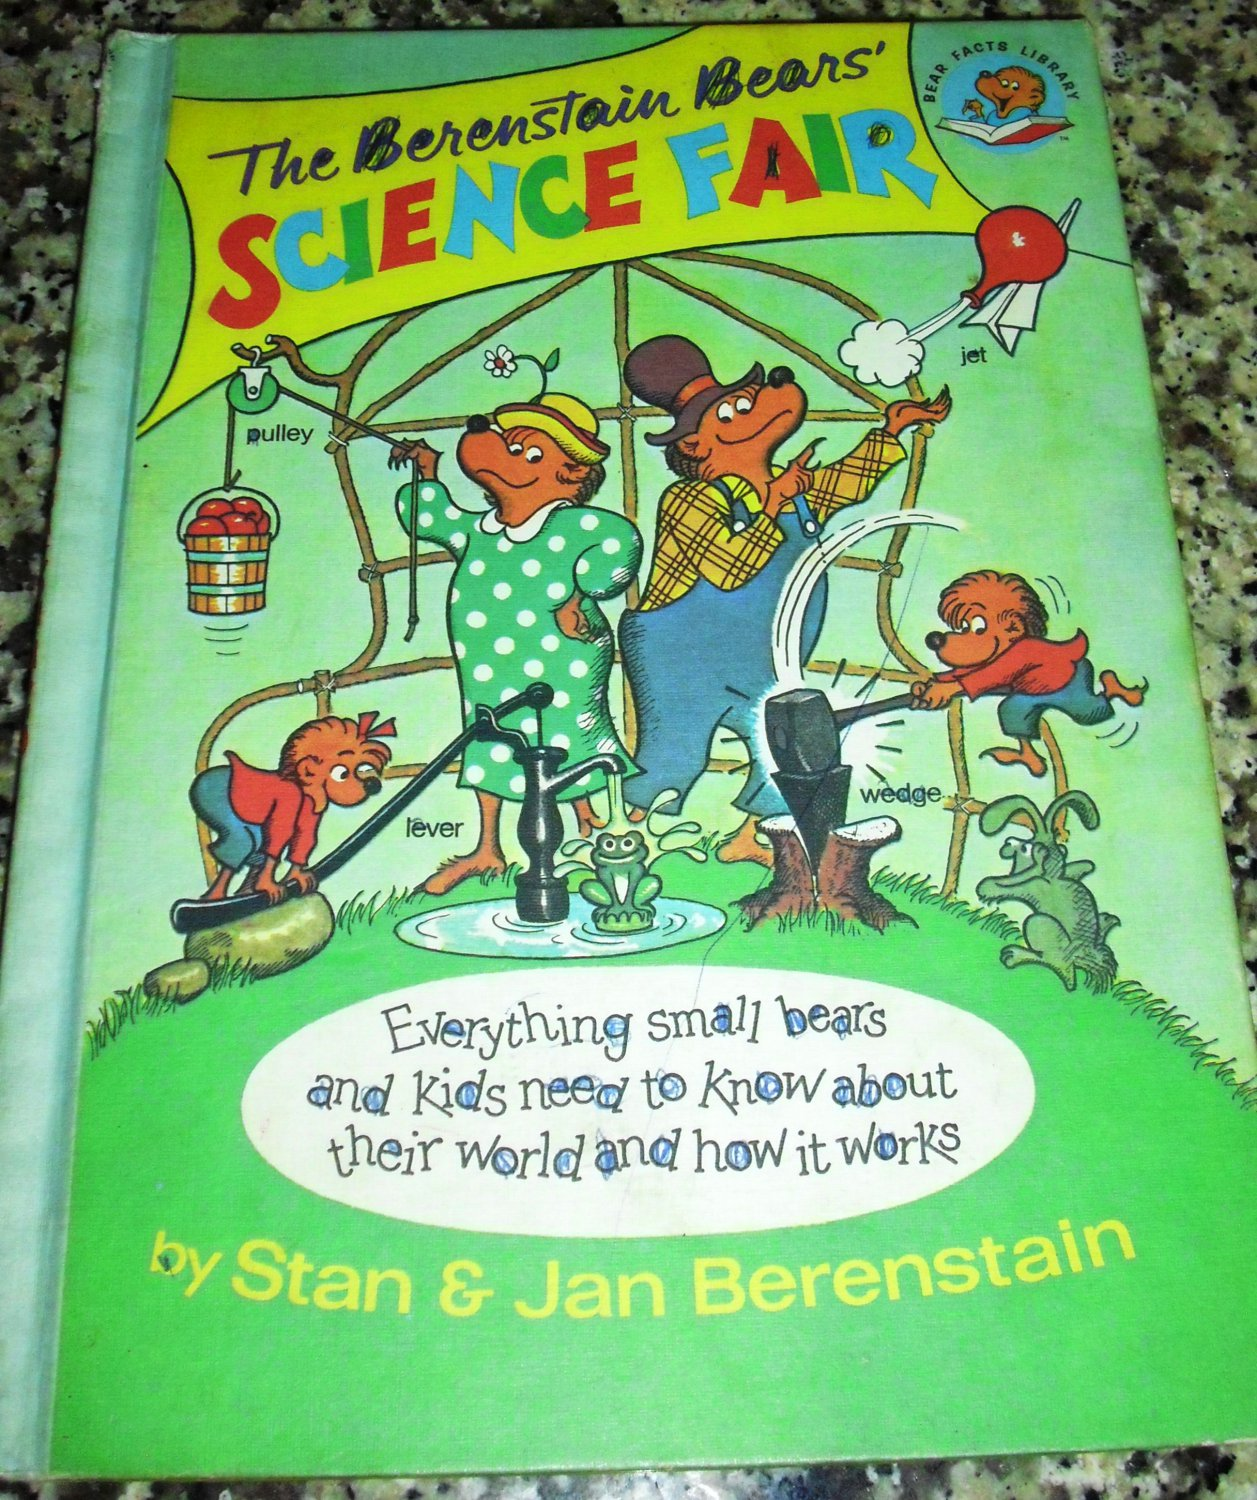 The Berenstain Bears' Science Fair Paperback � March 12, 1984 by S & J Berenstain